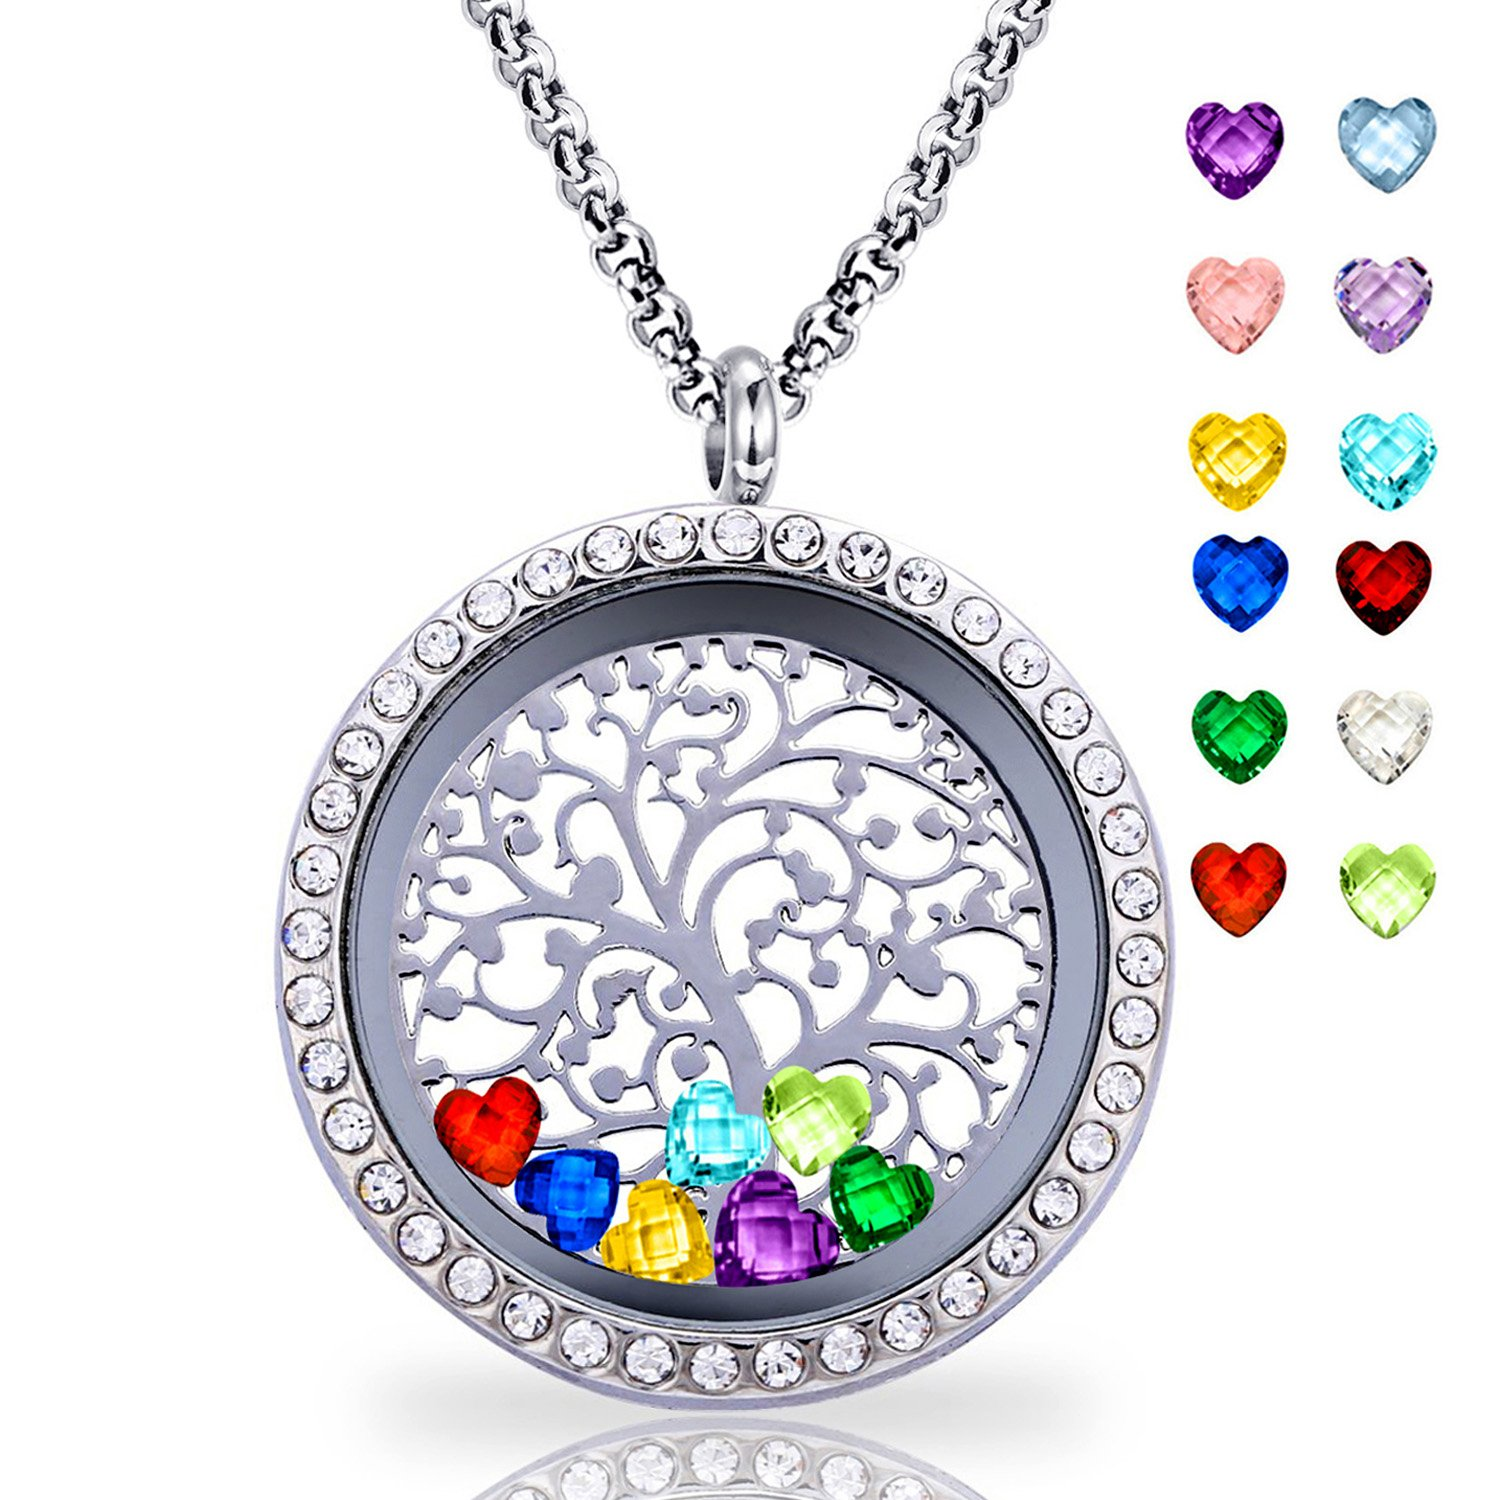 quotes there my grandma stainless so call lockets stole these item from steel jewelry me heart in necklace christmas s pendant they necklaces kids